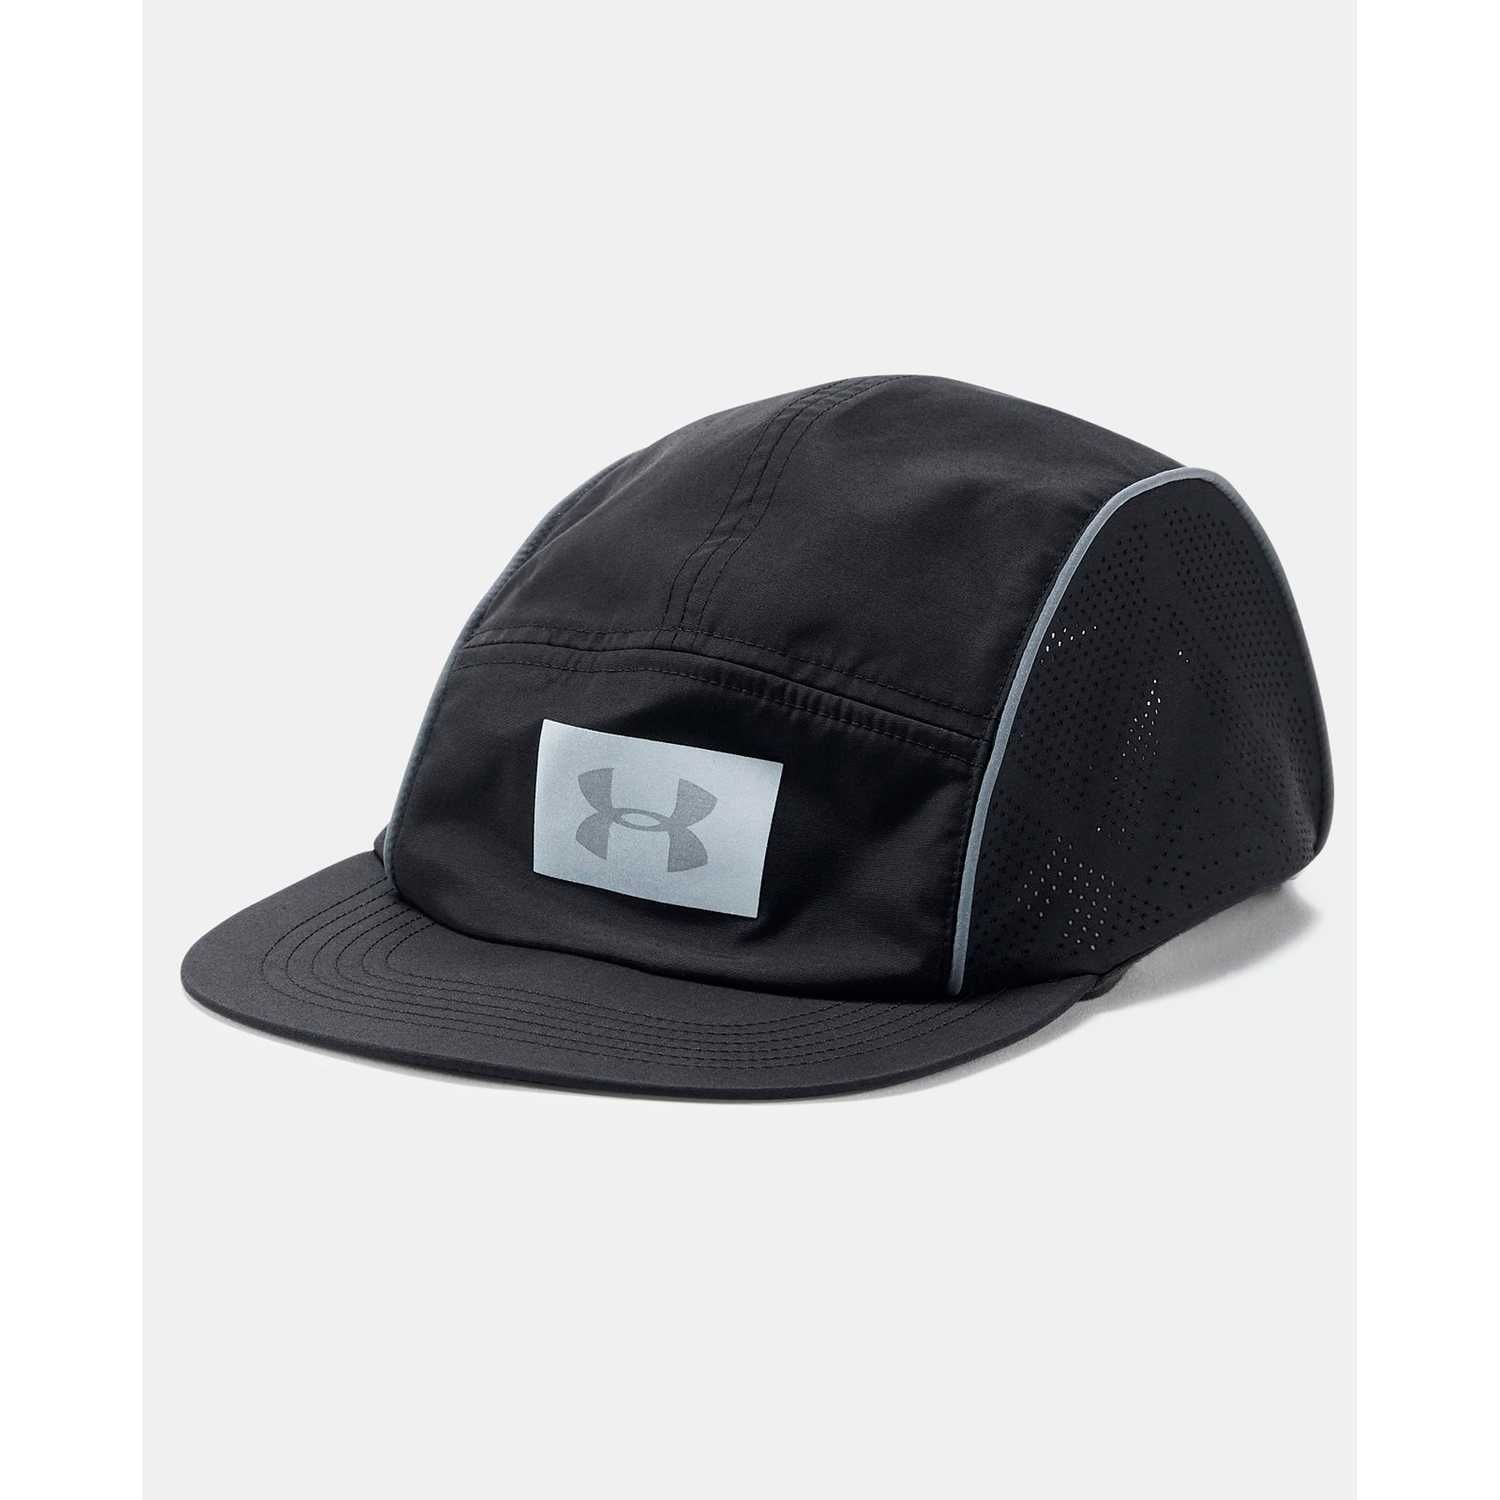 Gorro de Mujer Under Armour Negro /gris packable run cap